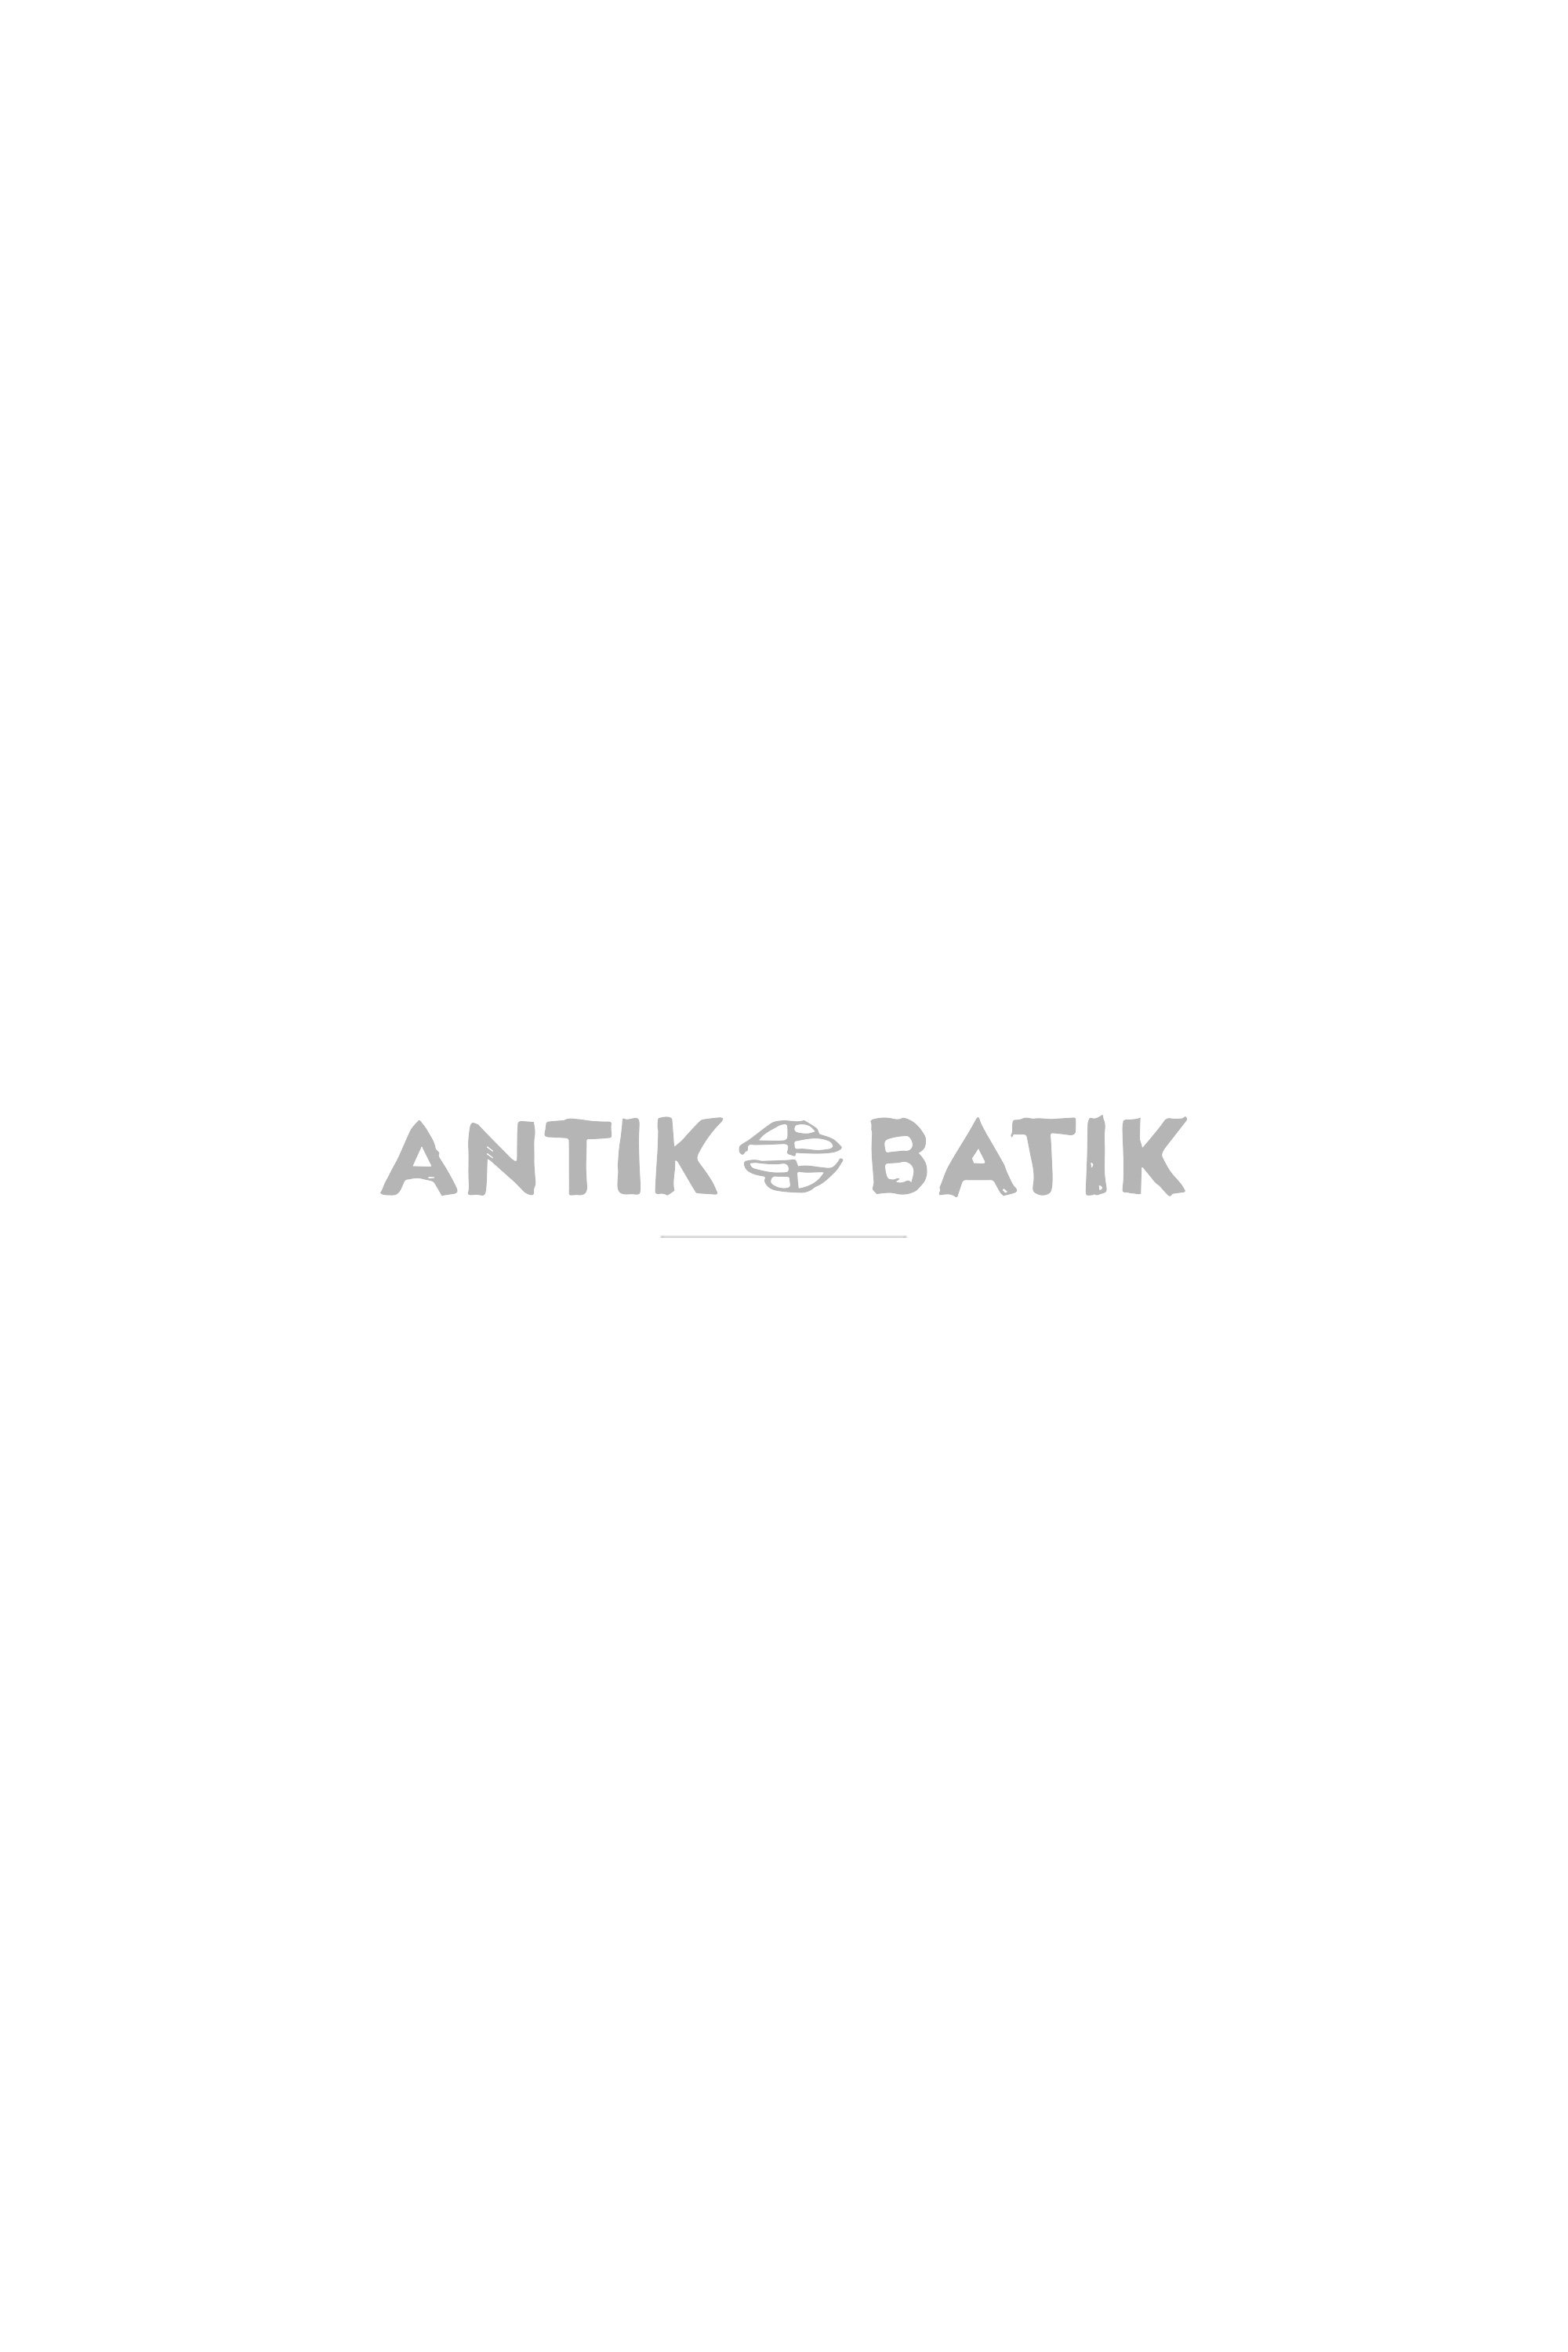 Antikbatik Lorette Sheer Blouse - Brown